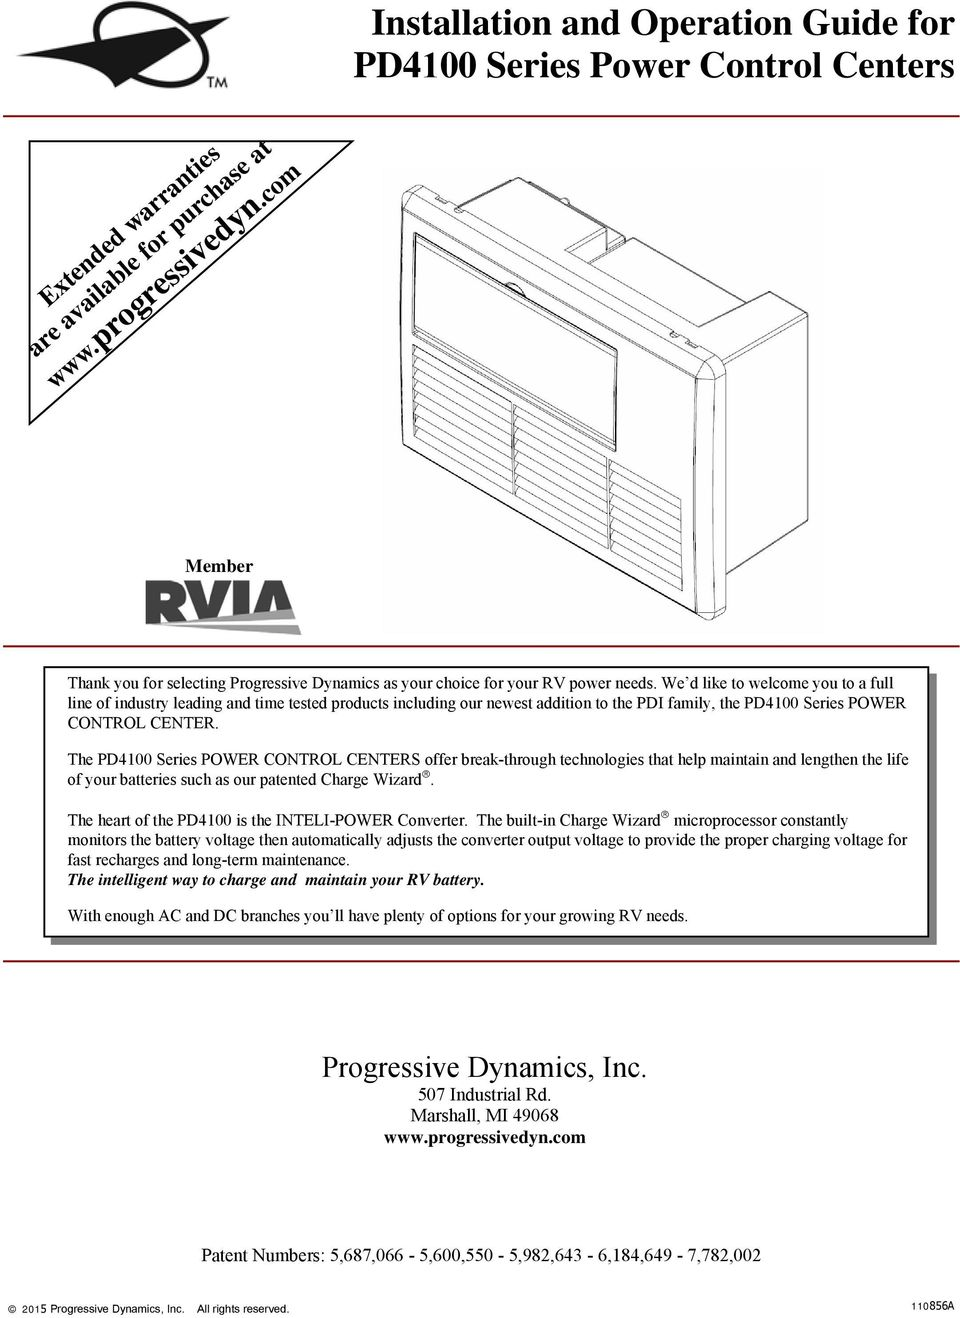 Progressive Dynamics Power Converter Wiring Diagram Apache Camper Installation And Operation Guide For Pd4100 Series Control